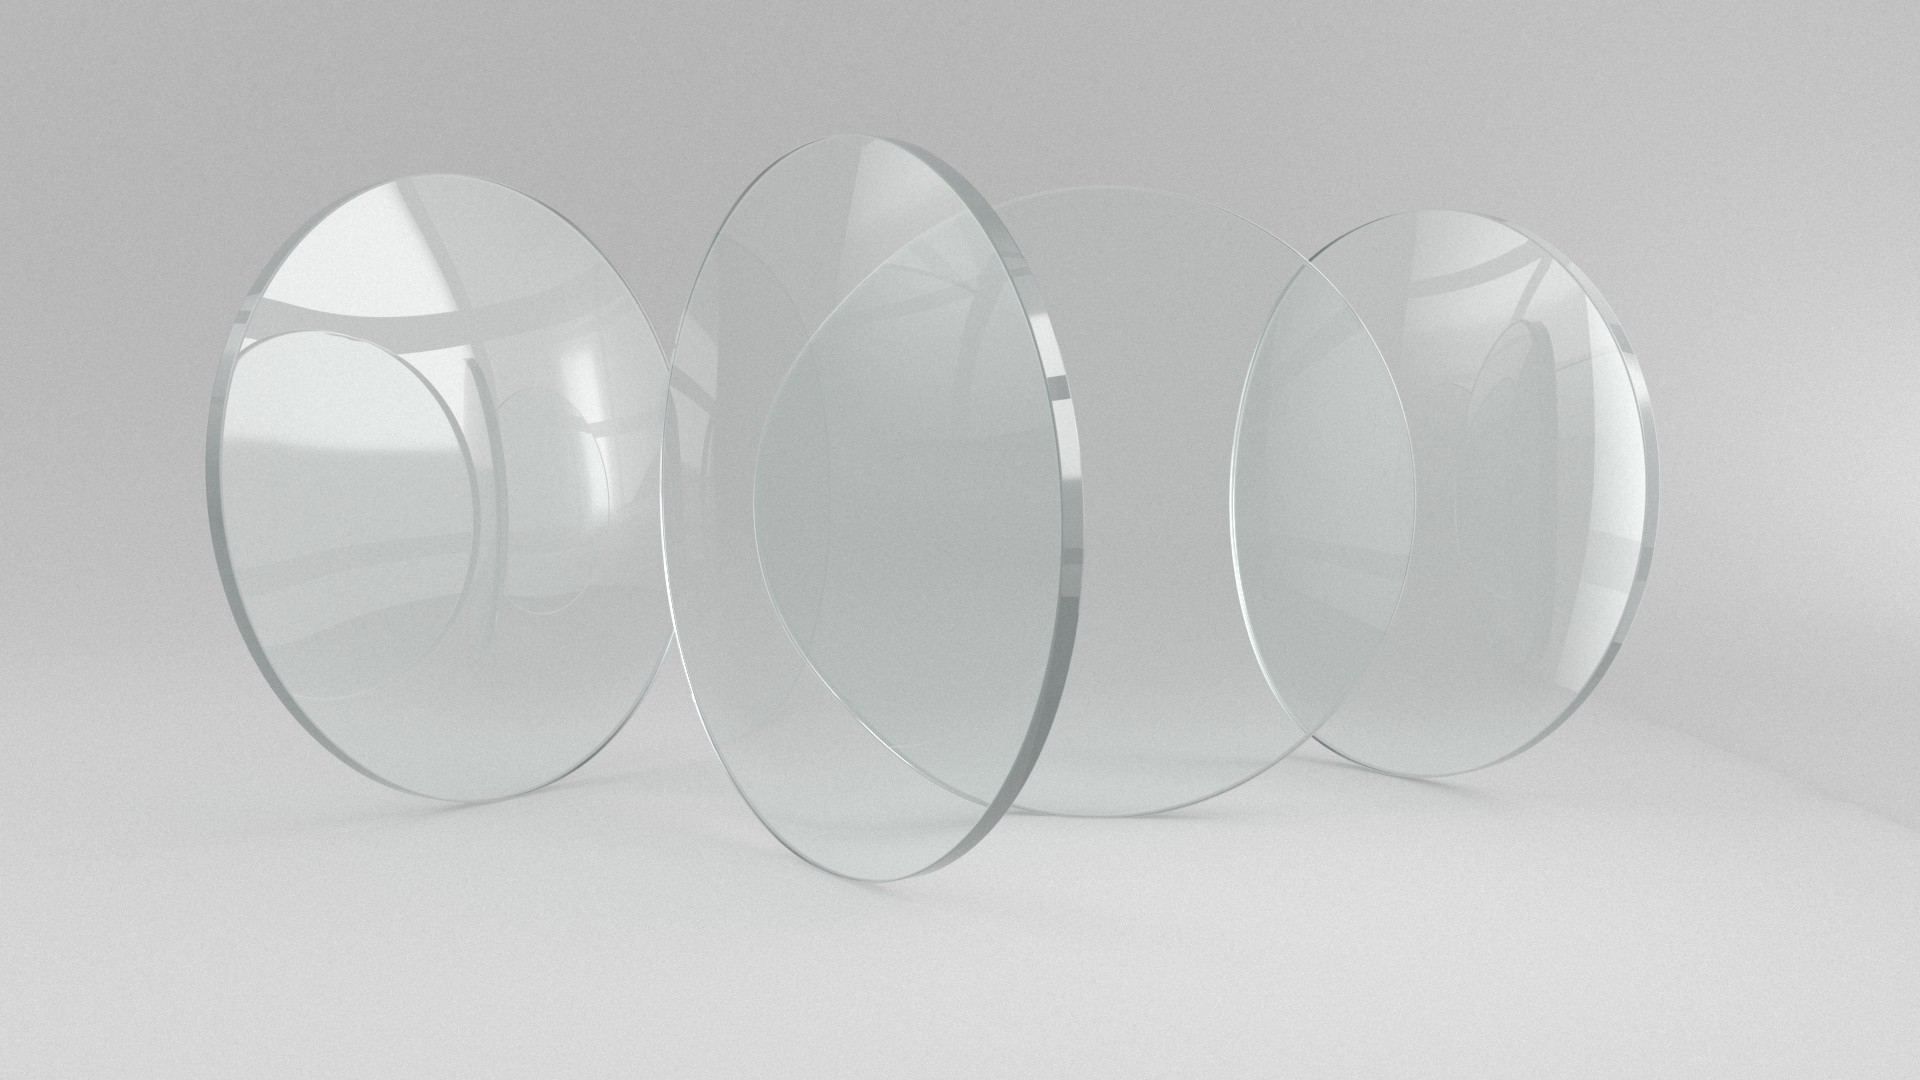 Alan kichl lenses 01